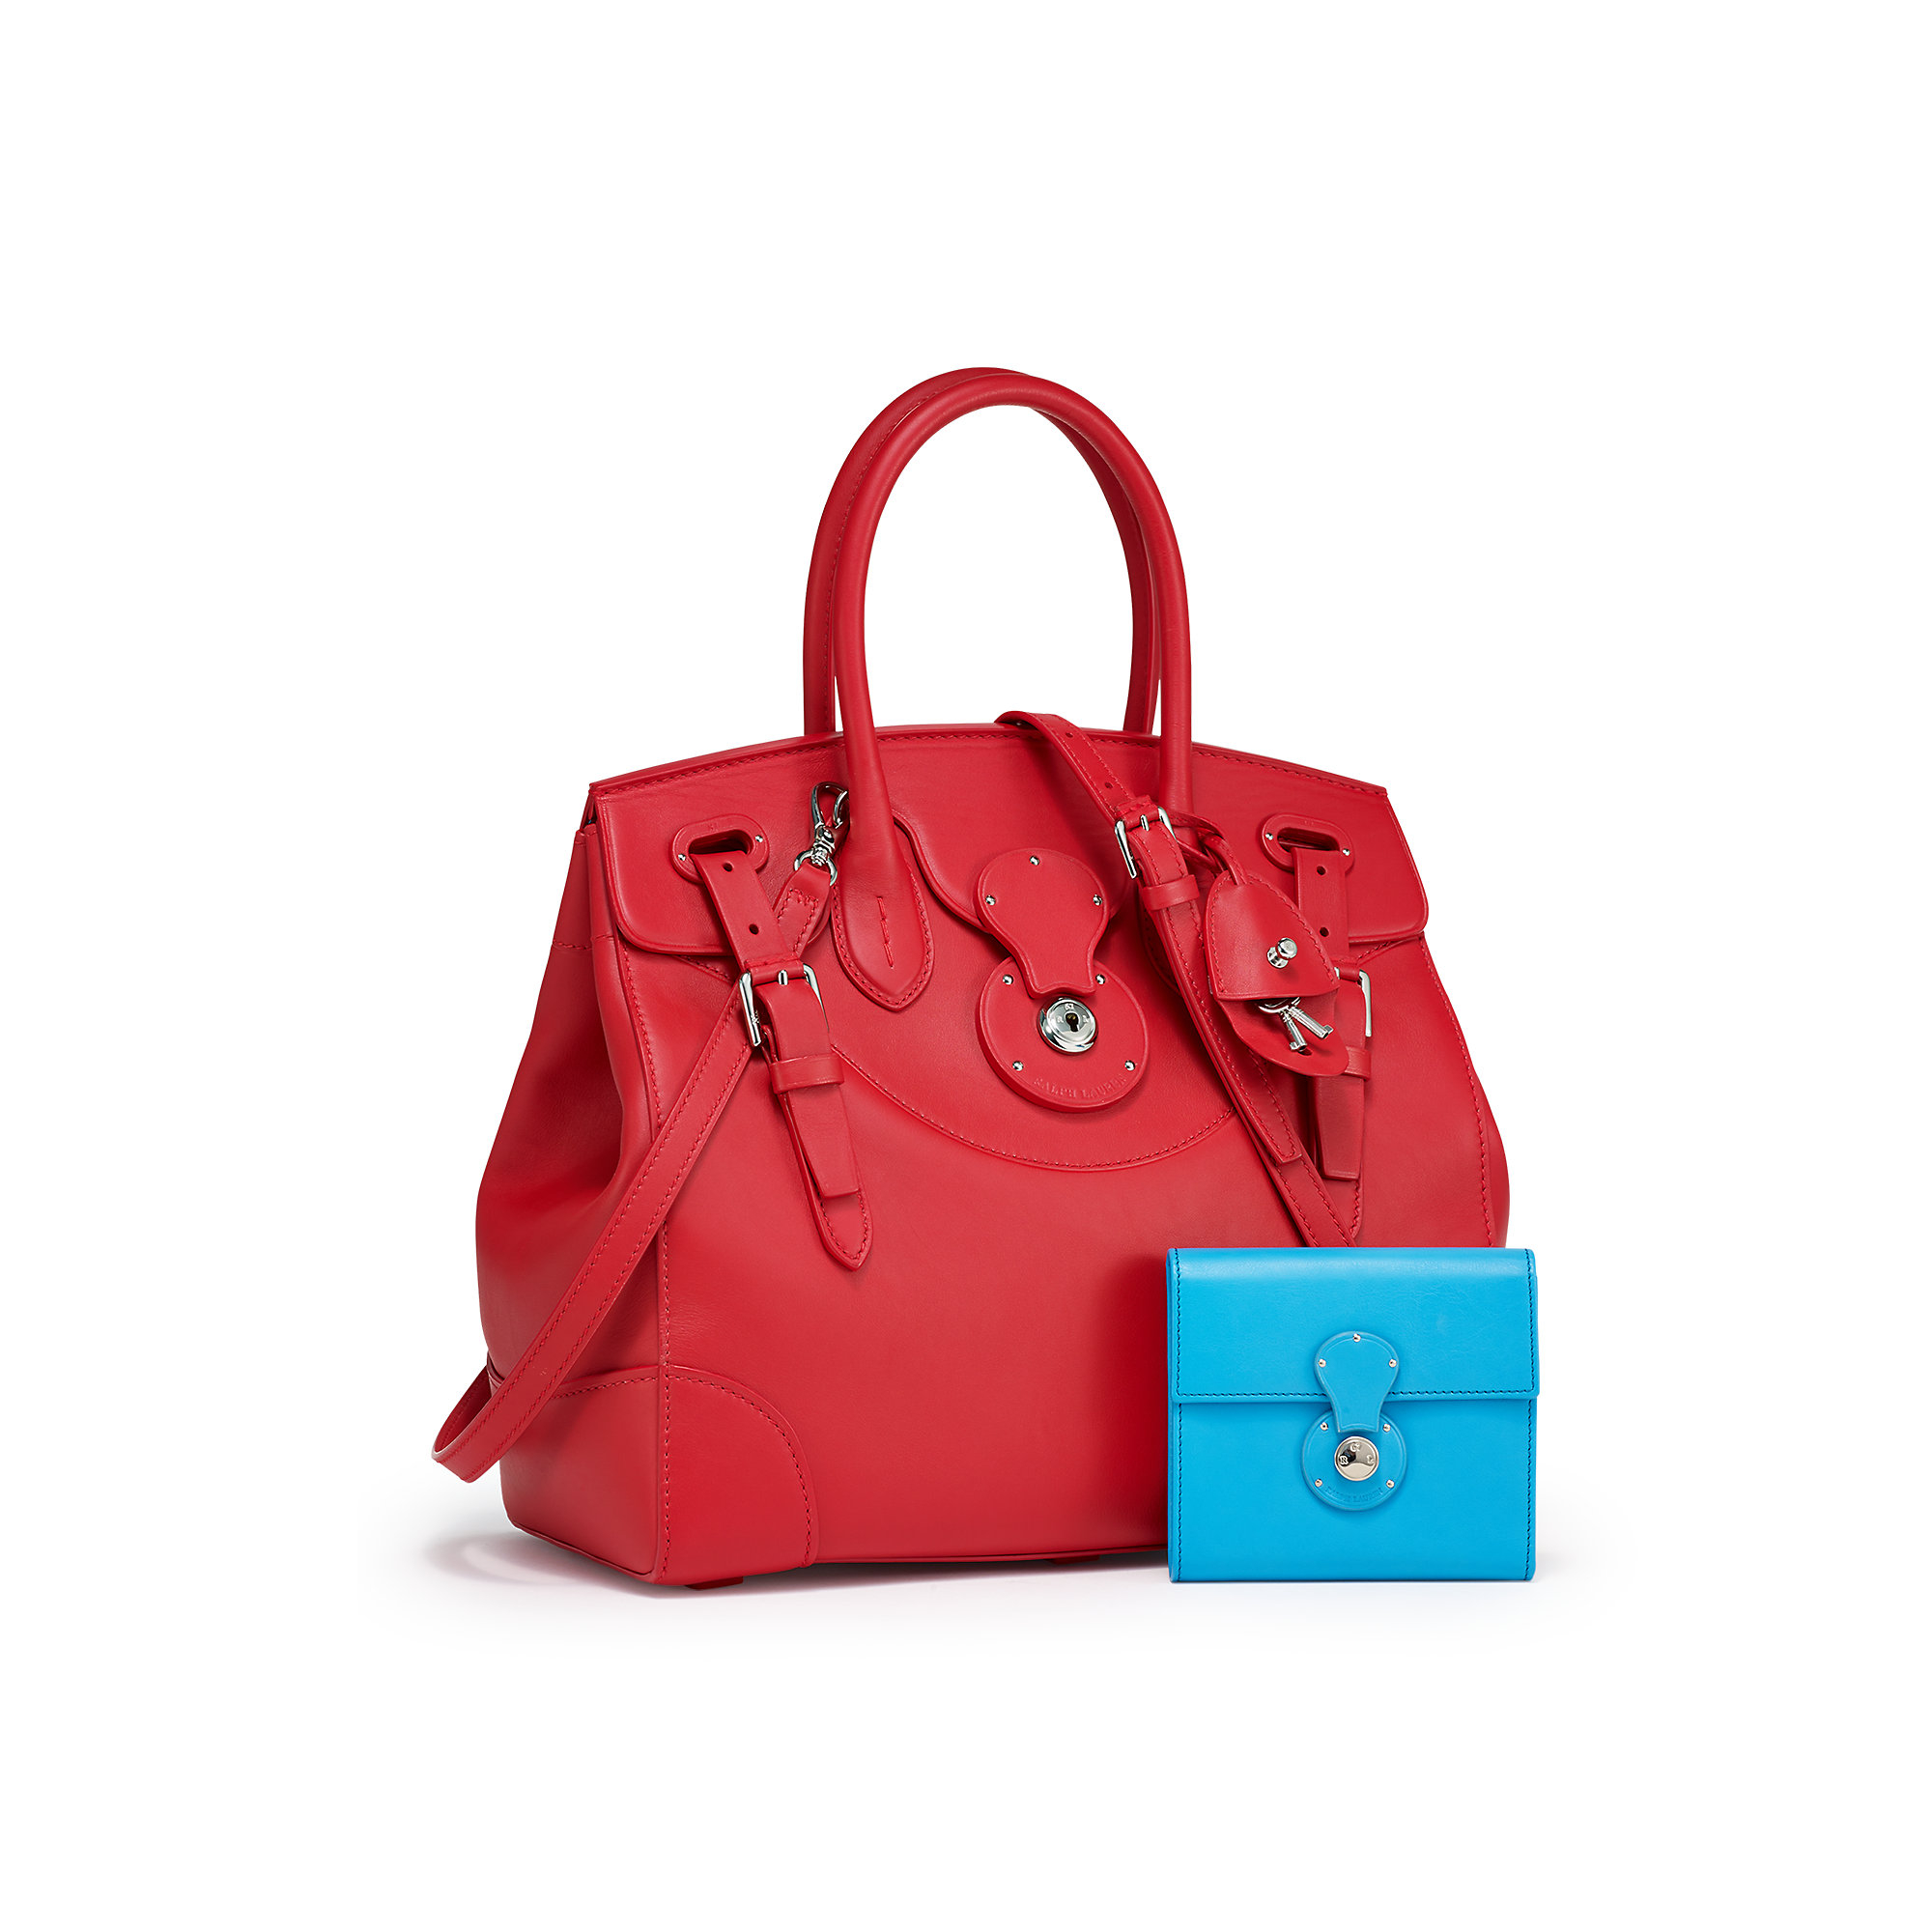 Lyst - Ralph Lauren Soft Ricky Bag in Red 4d2c3f5b26060